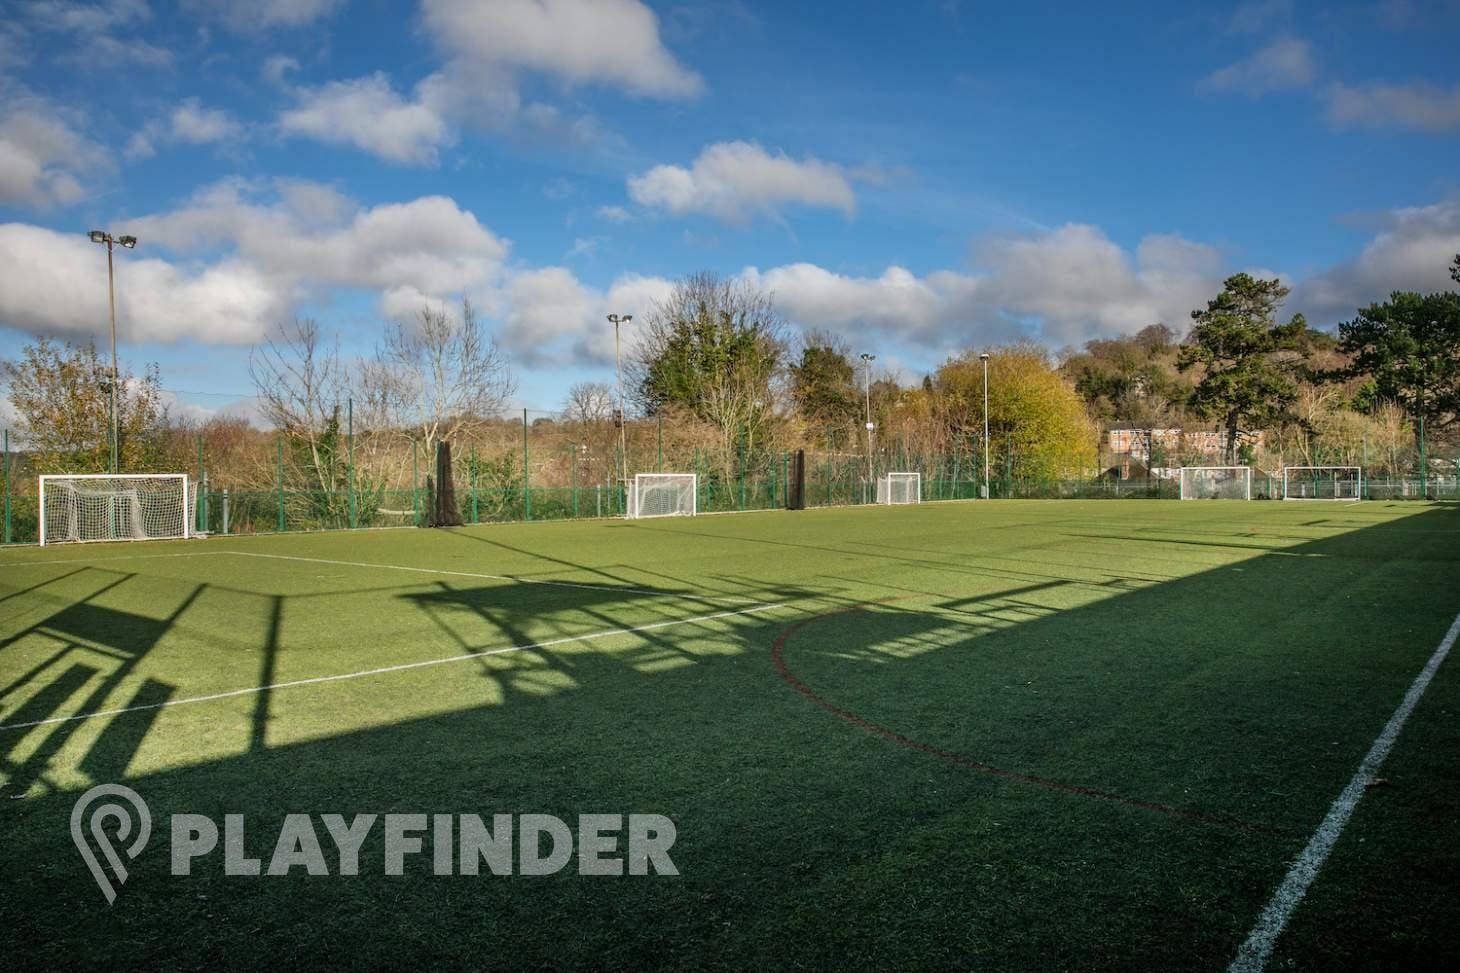 Whyteleafe FC 5 a side | 3G Astroturf football pitch